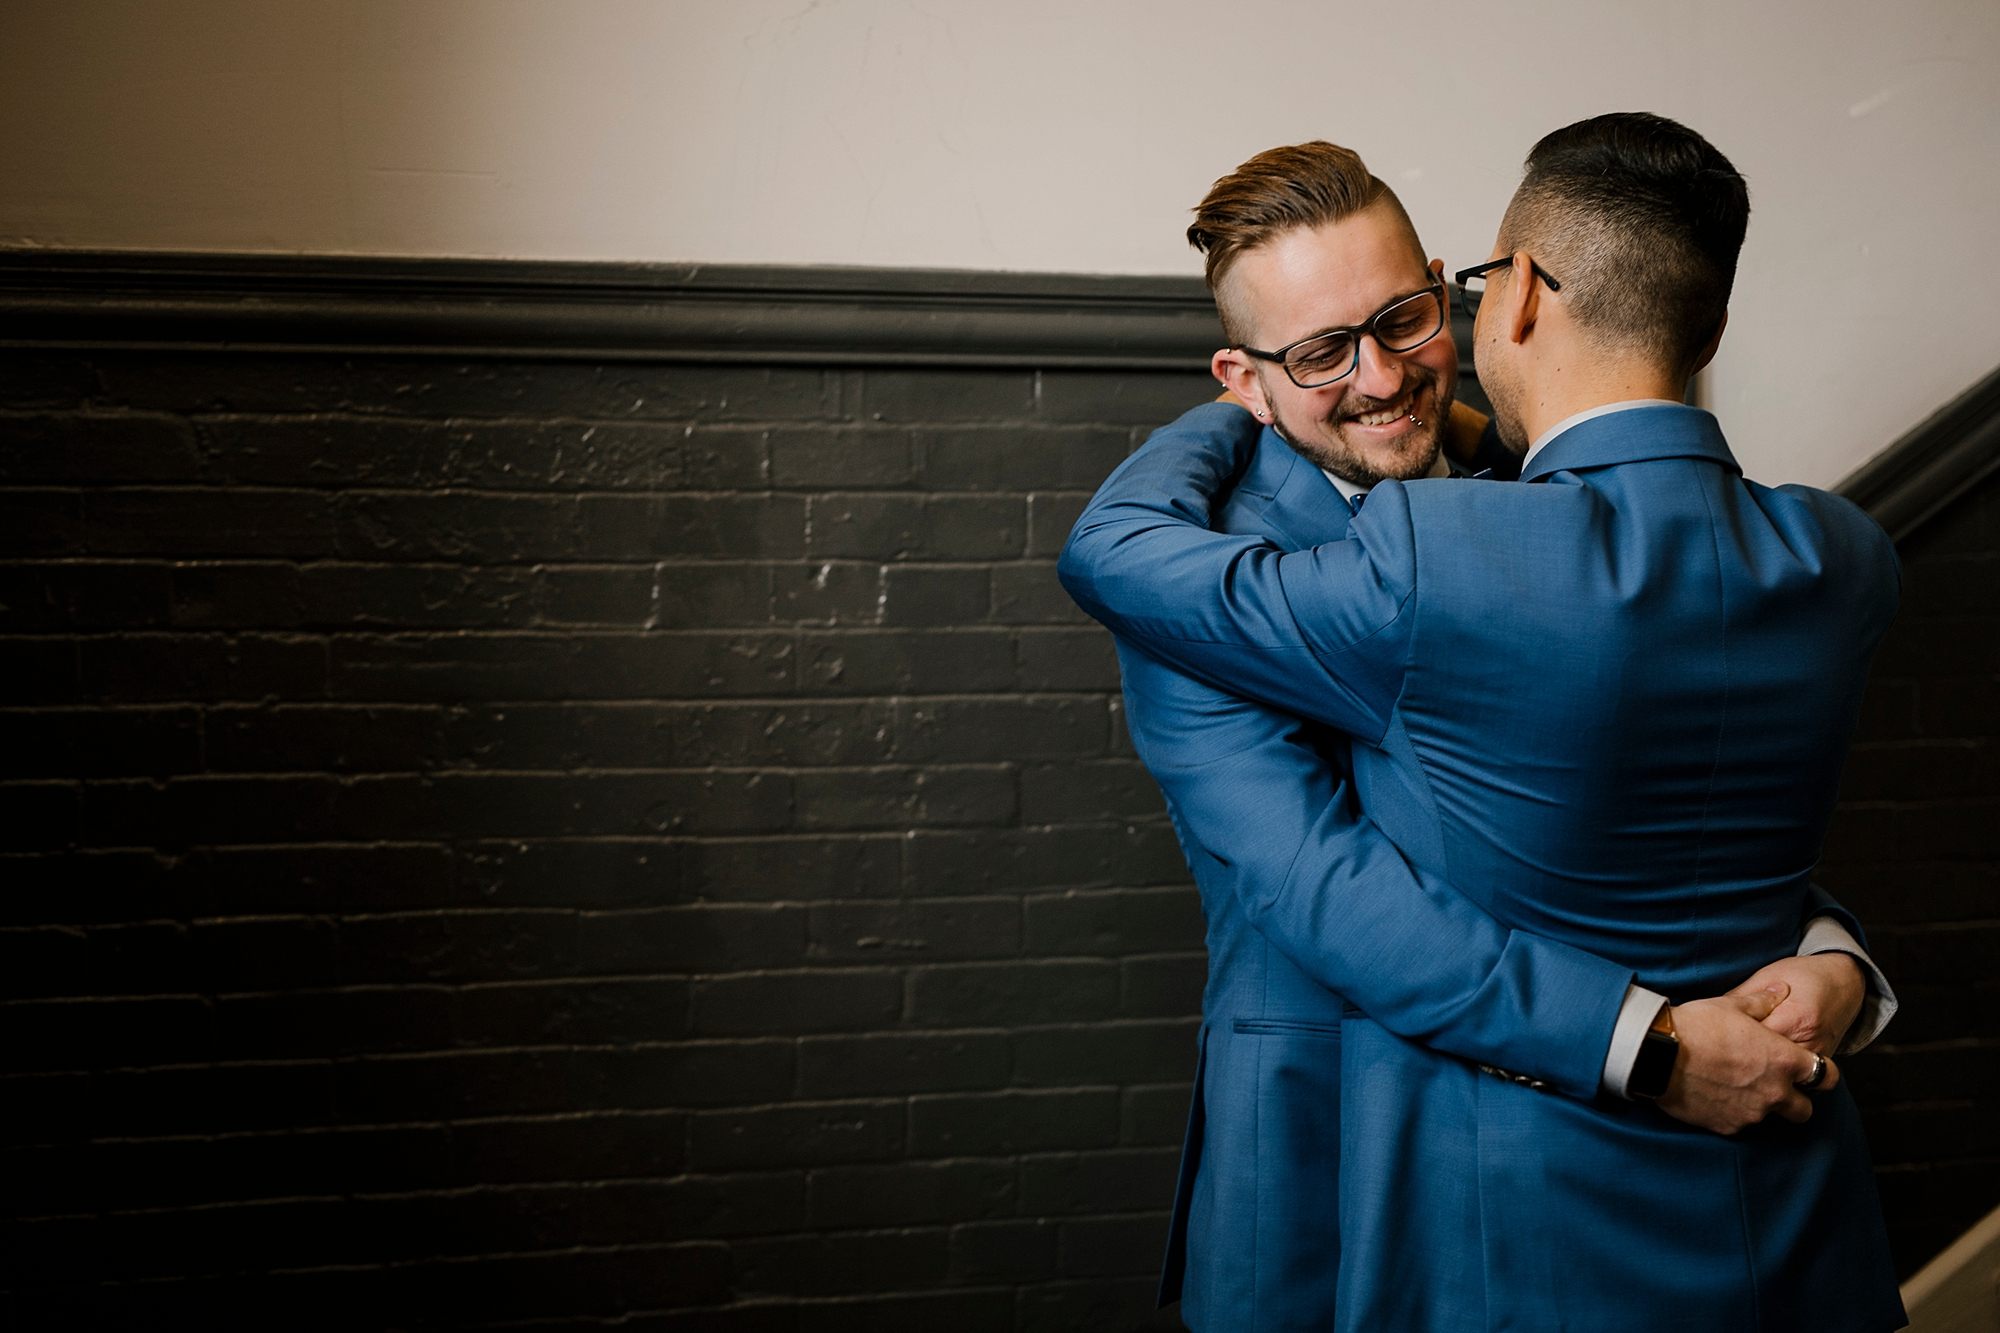 Joe_Mac_Creative_Philadelphia_Philly_LGBT_Gay_Engagement_Wedding_Photography__0112.jpg